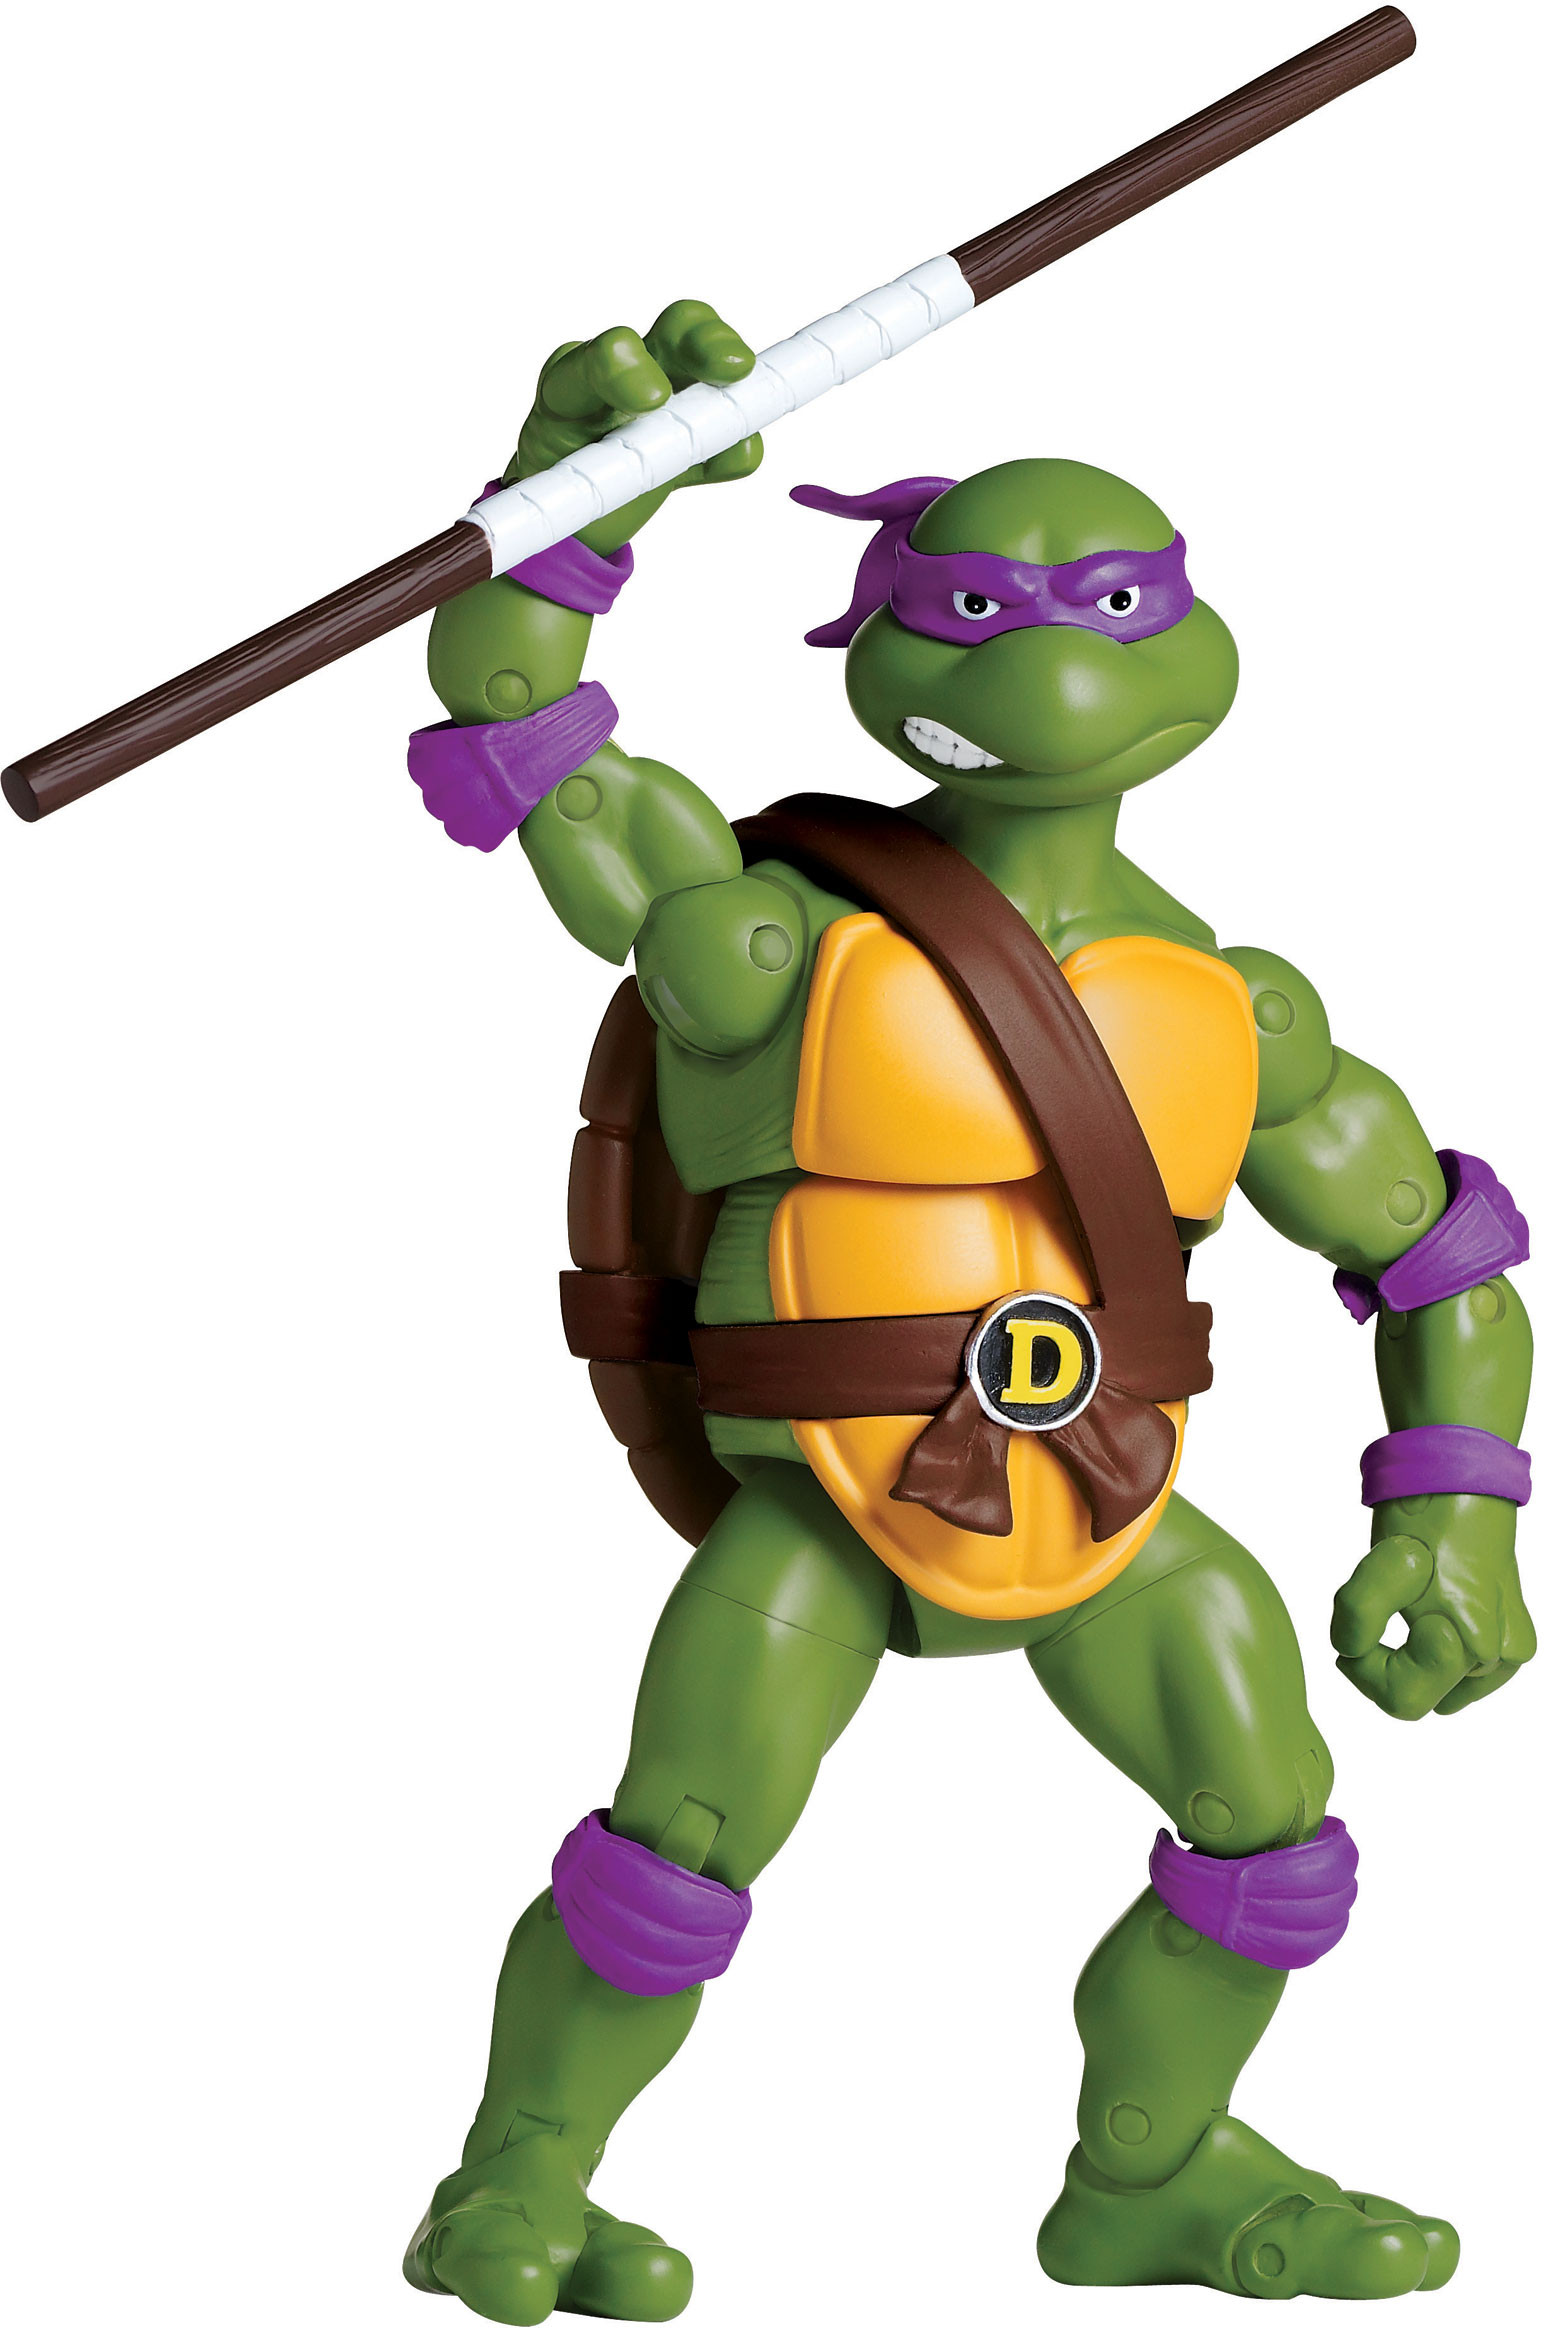 Teenage mutant ninja turtles nickelodeon donatello toy - photo#16